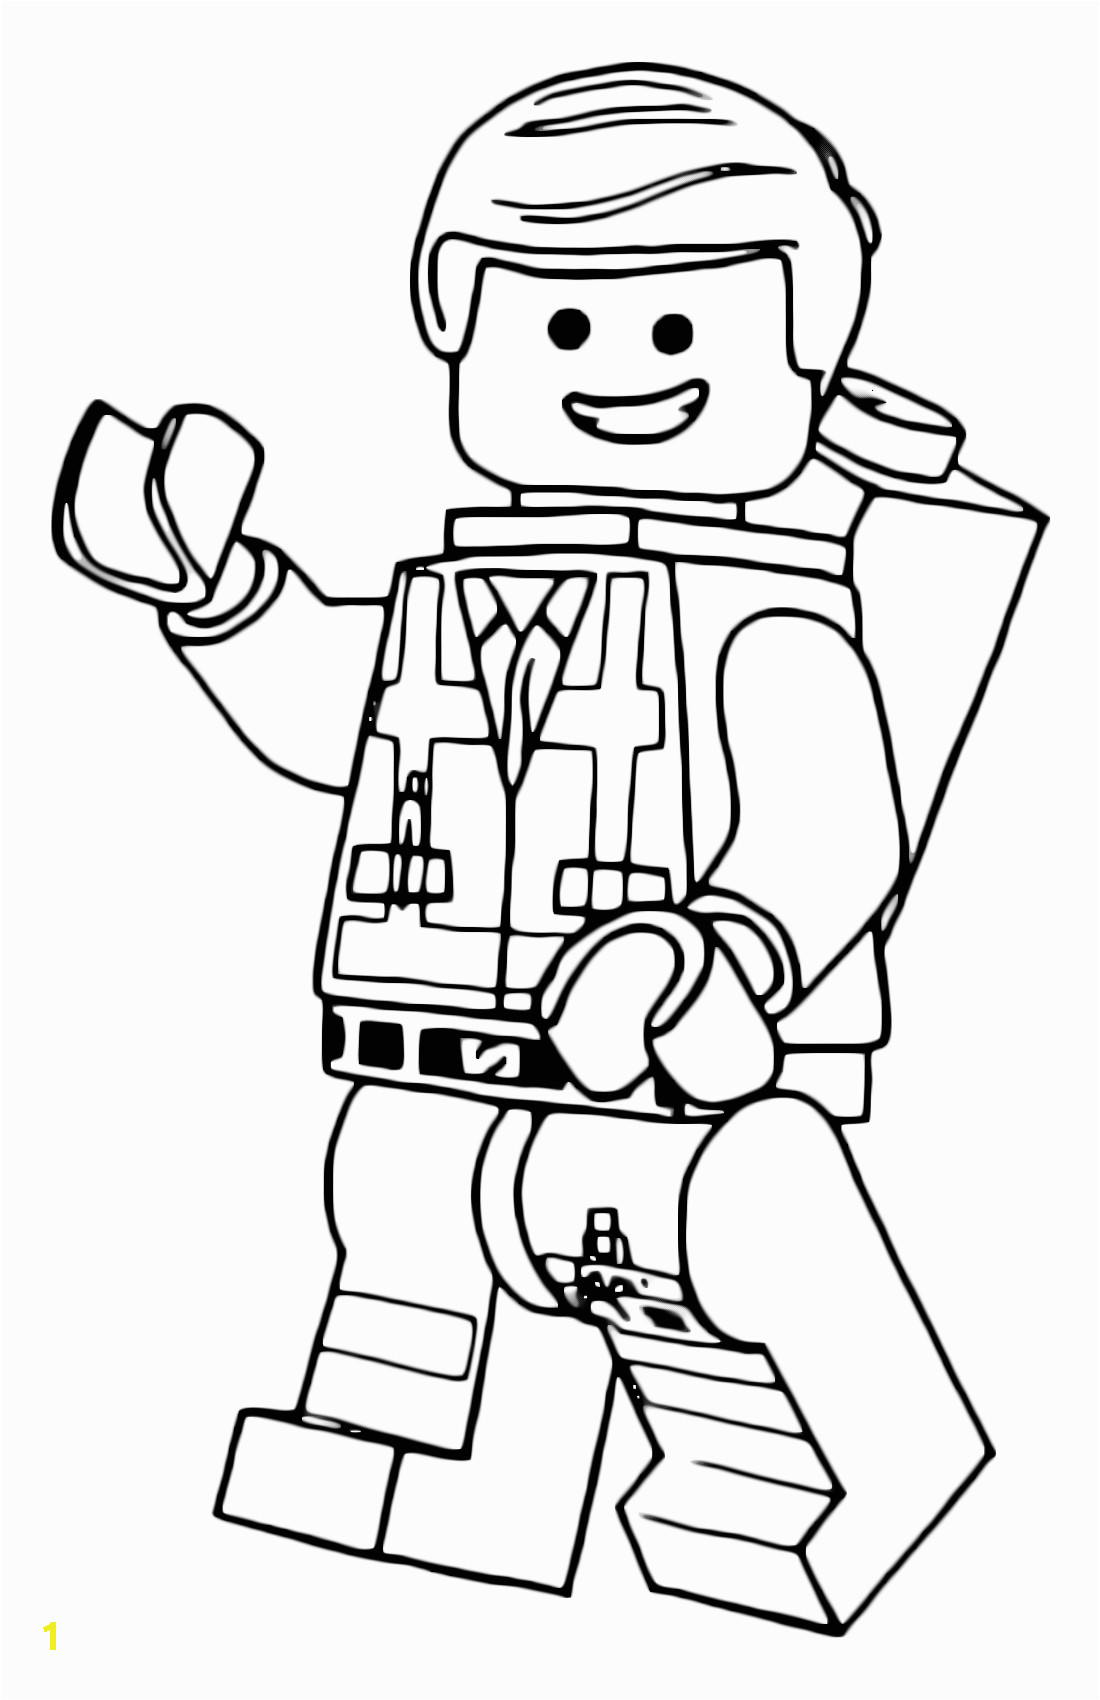 e c0f5d1f7f66fafefcf0c815e8 liberal lego emmet coloring pages special movie the lego 2981 1100 1700